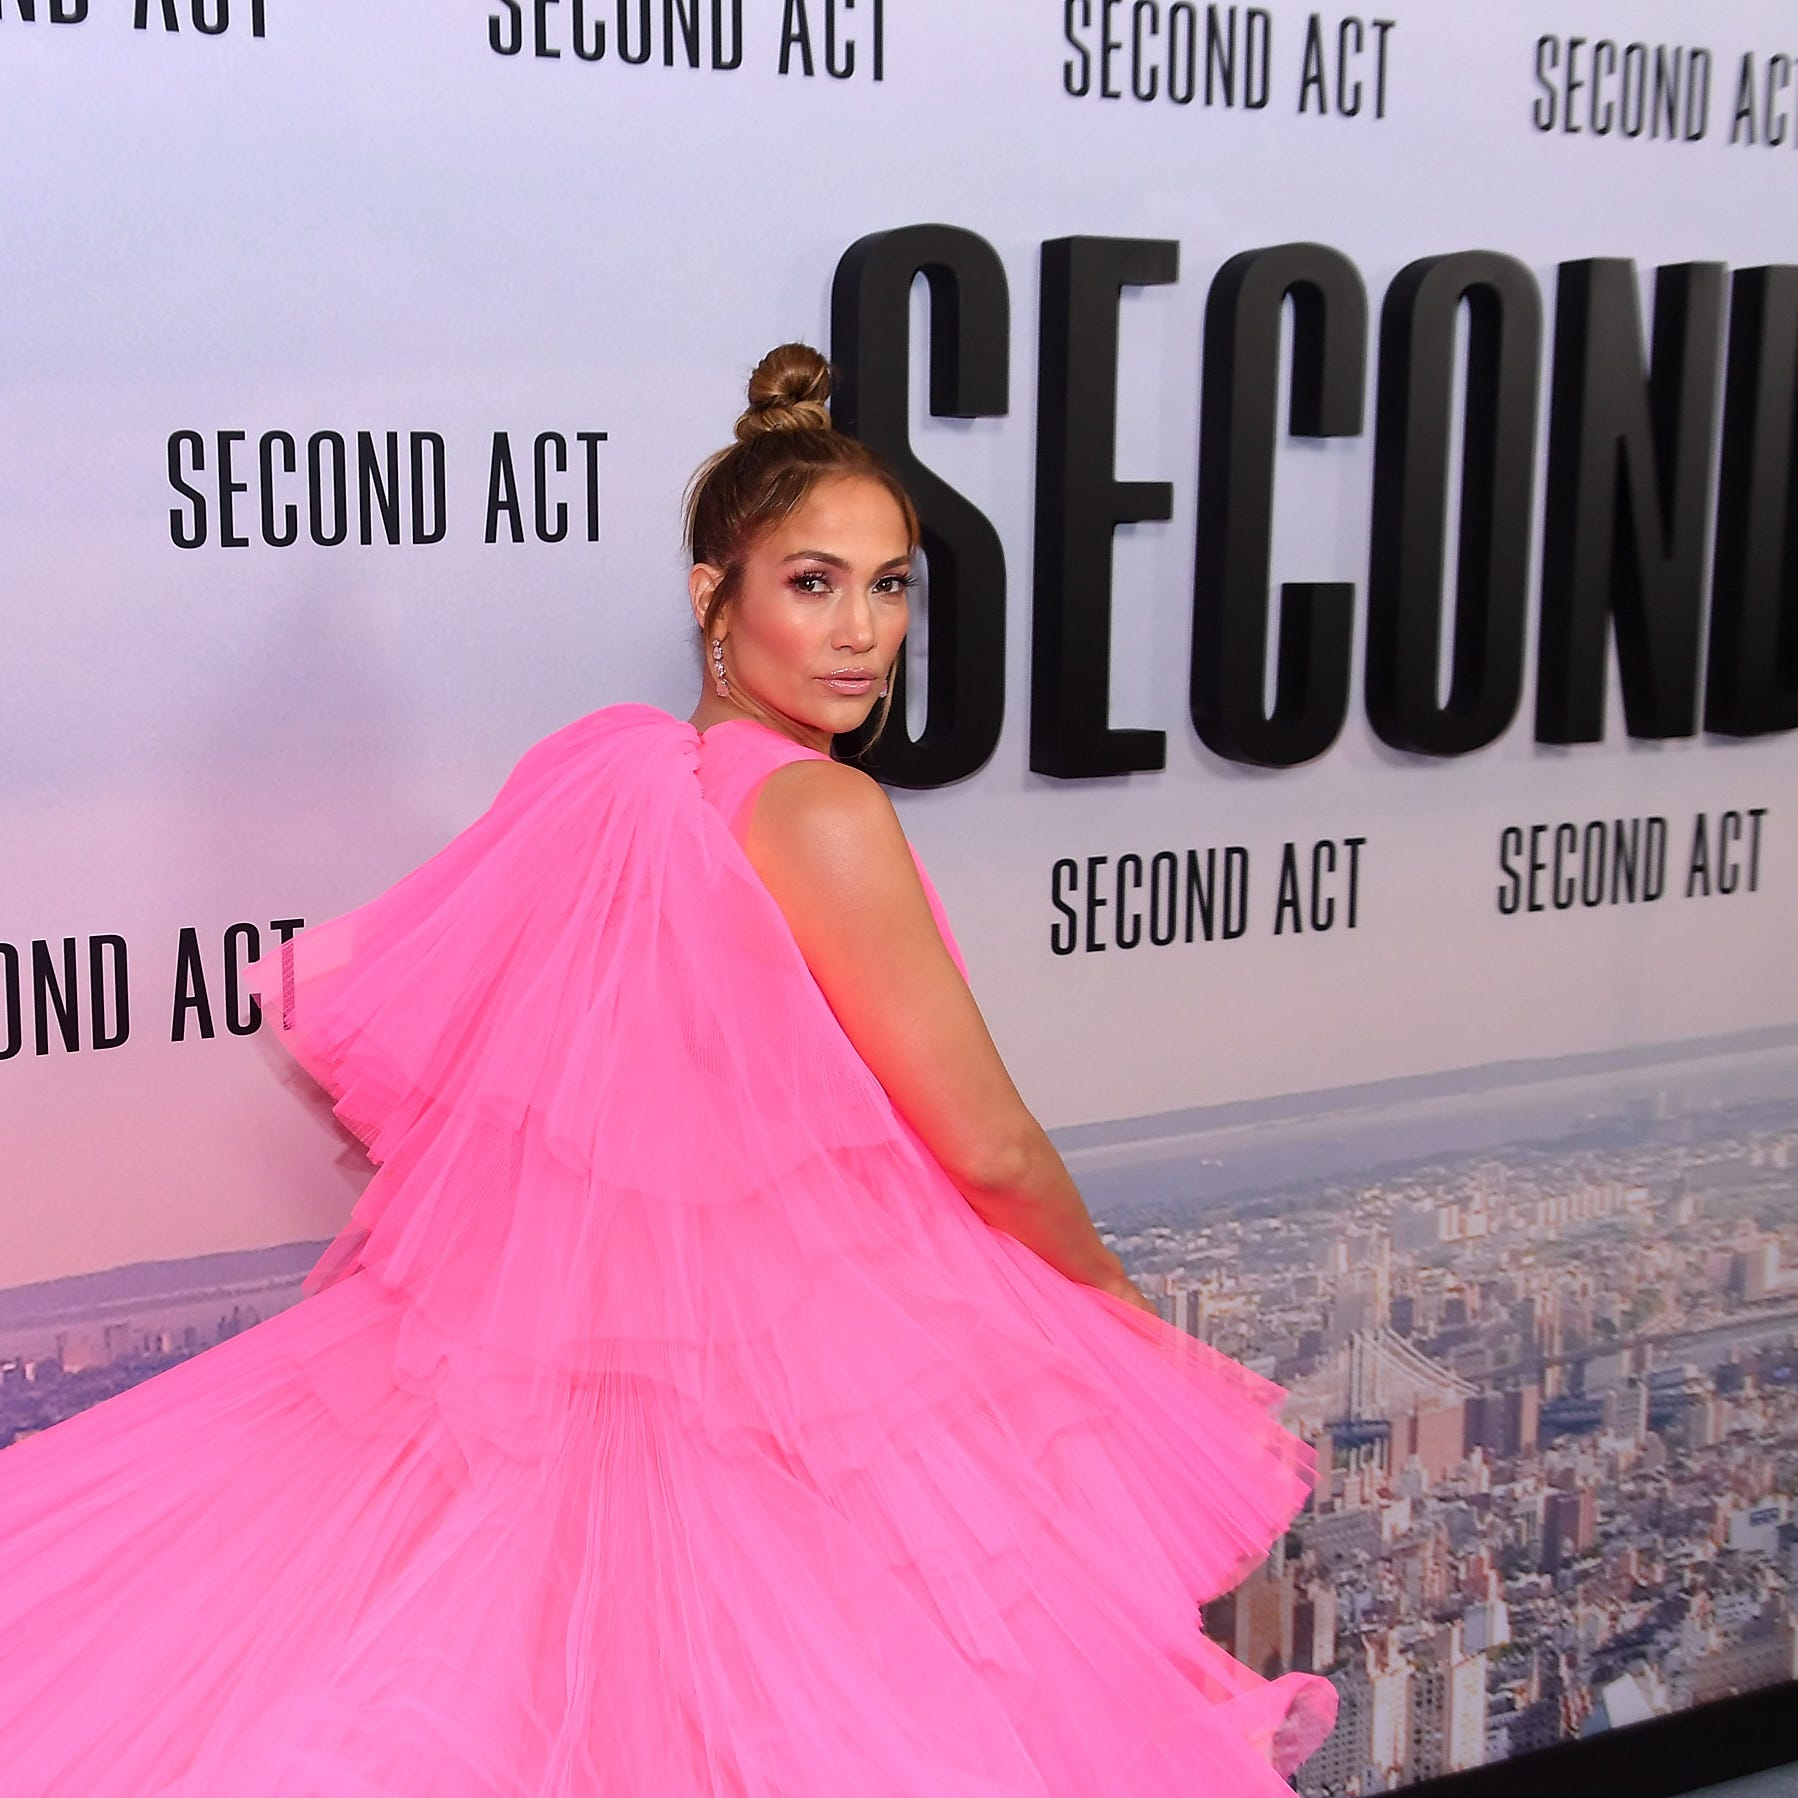 """Jennifer Lopez danced with her daughter, Emme, in her latest music video, """"Limitless,"""" which is a song in her upcoming movie, """"Second Act."""" Lopez is pictured at the world premiere of """"Second Act"""" in New York City on December 12."""